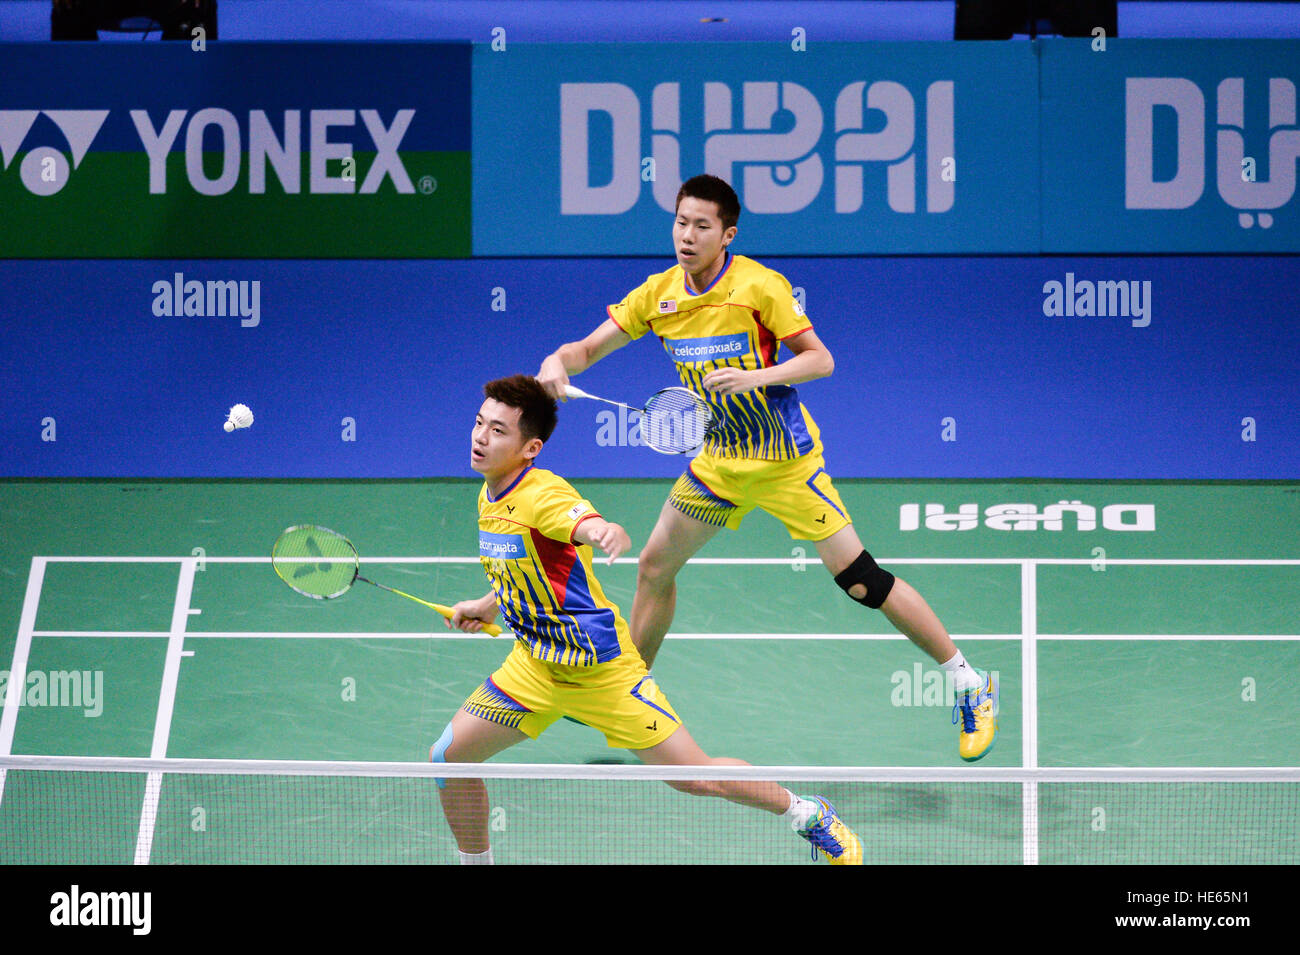 DUBAI, UAE, 18th Dec 2016. Malaysia's Goh V Shem and Tan Wee Kiong in action against Japan's Takeshi Kamura and - Stock Image